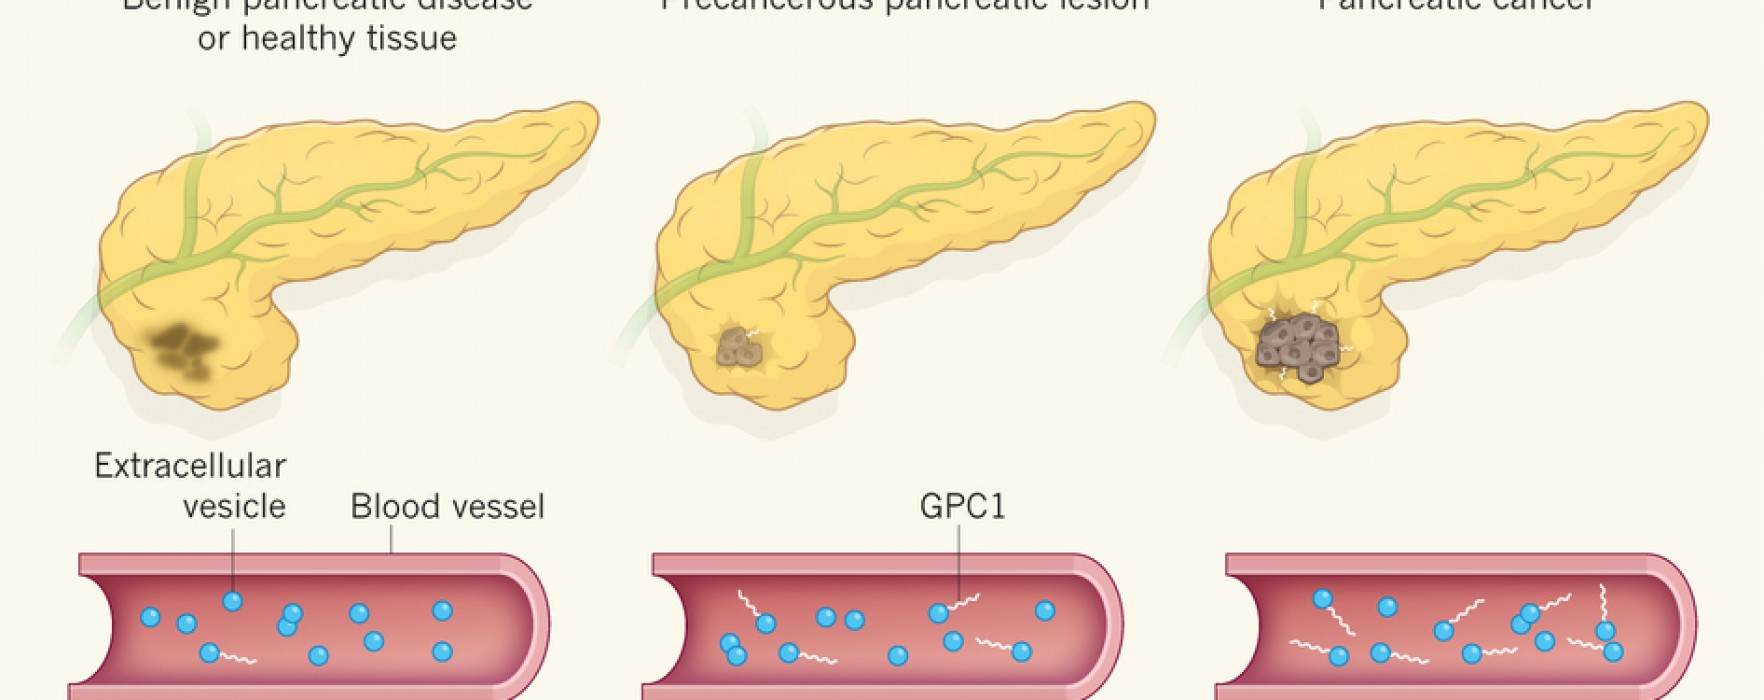 An Accurate Biomarker for Early-stage Pancreatic Cancer